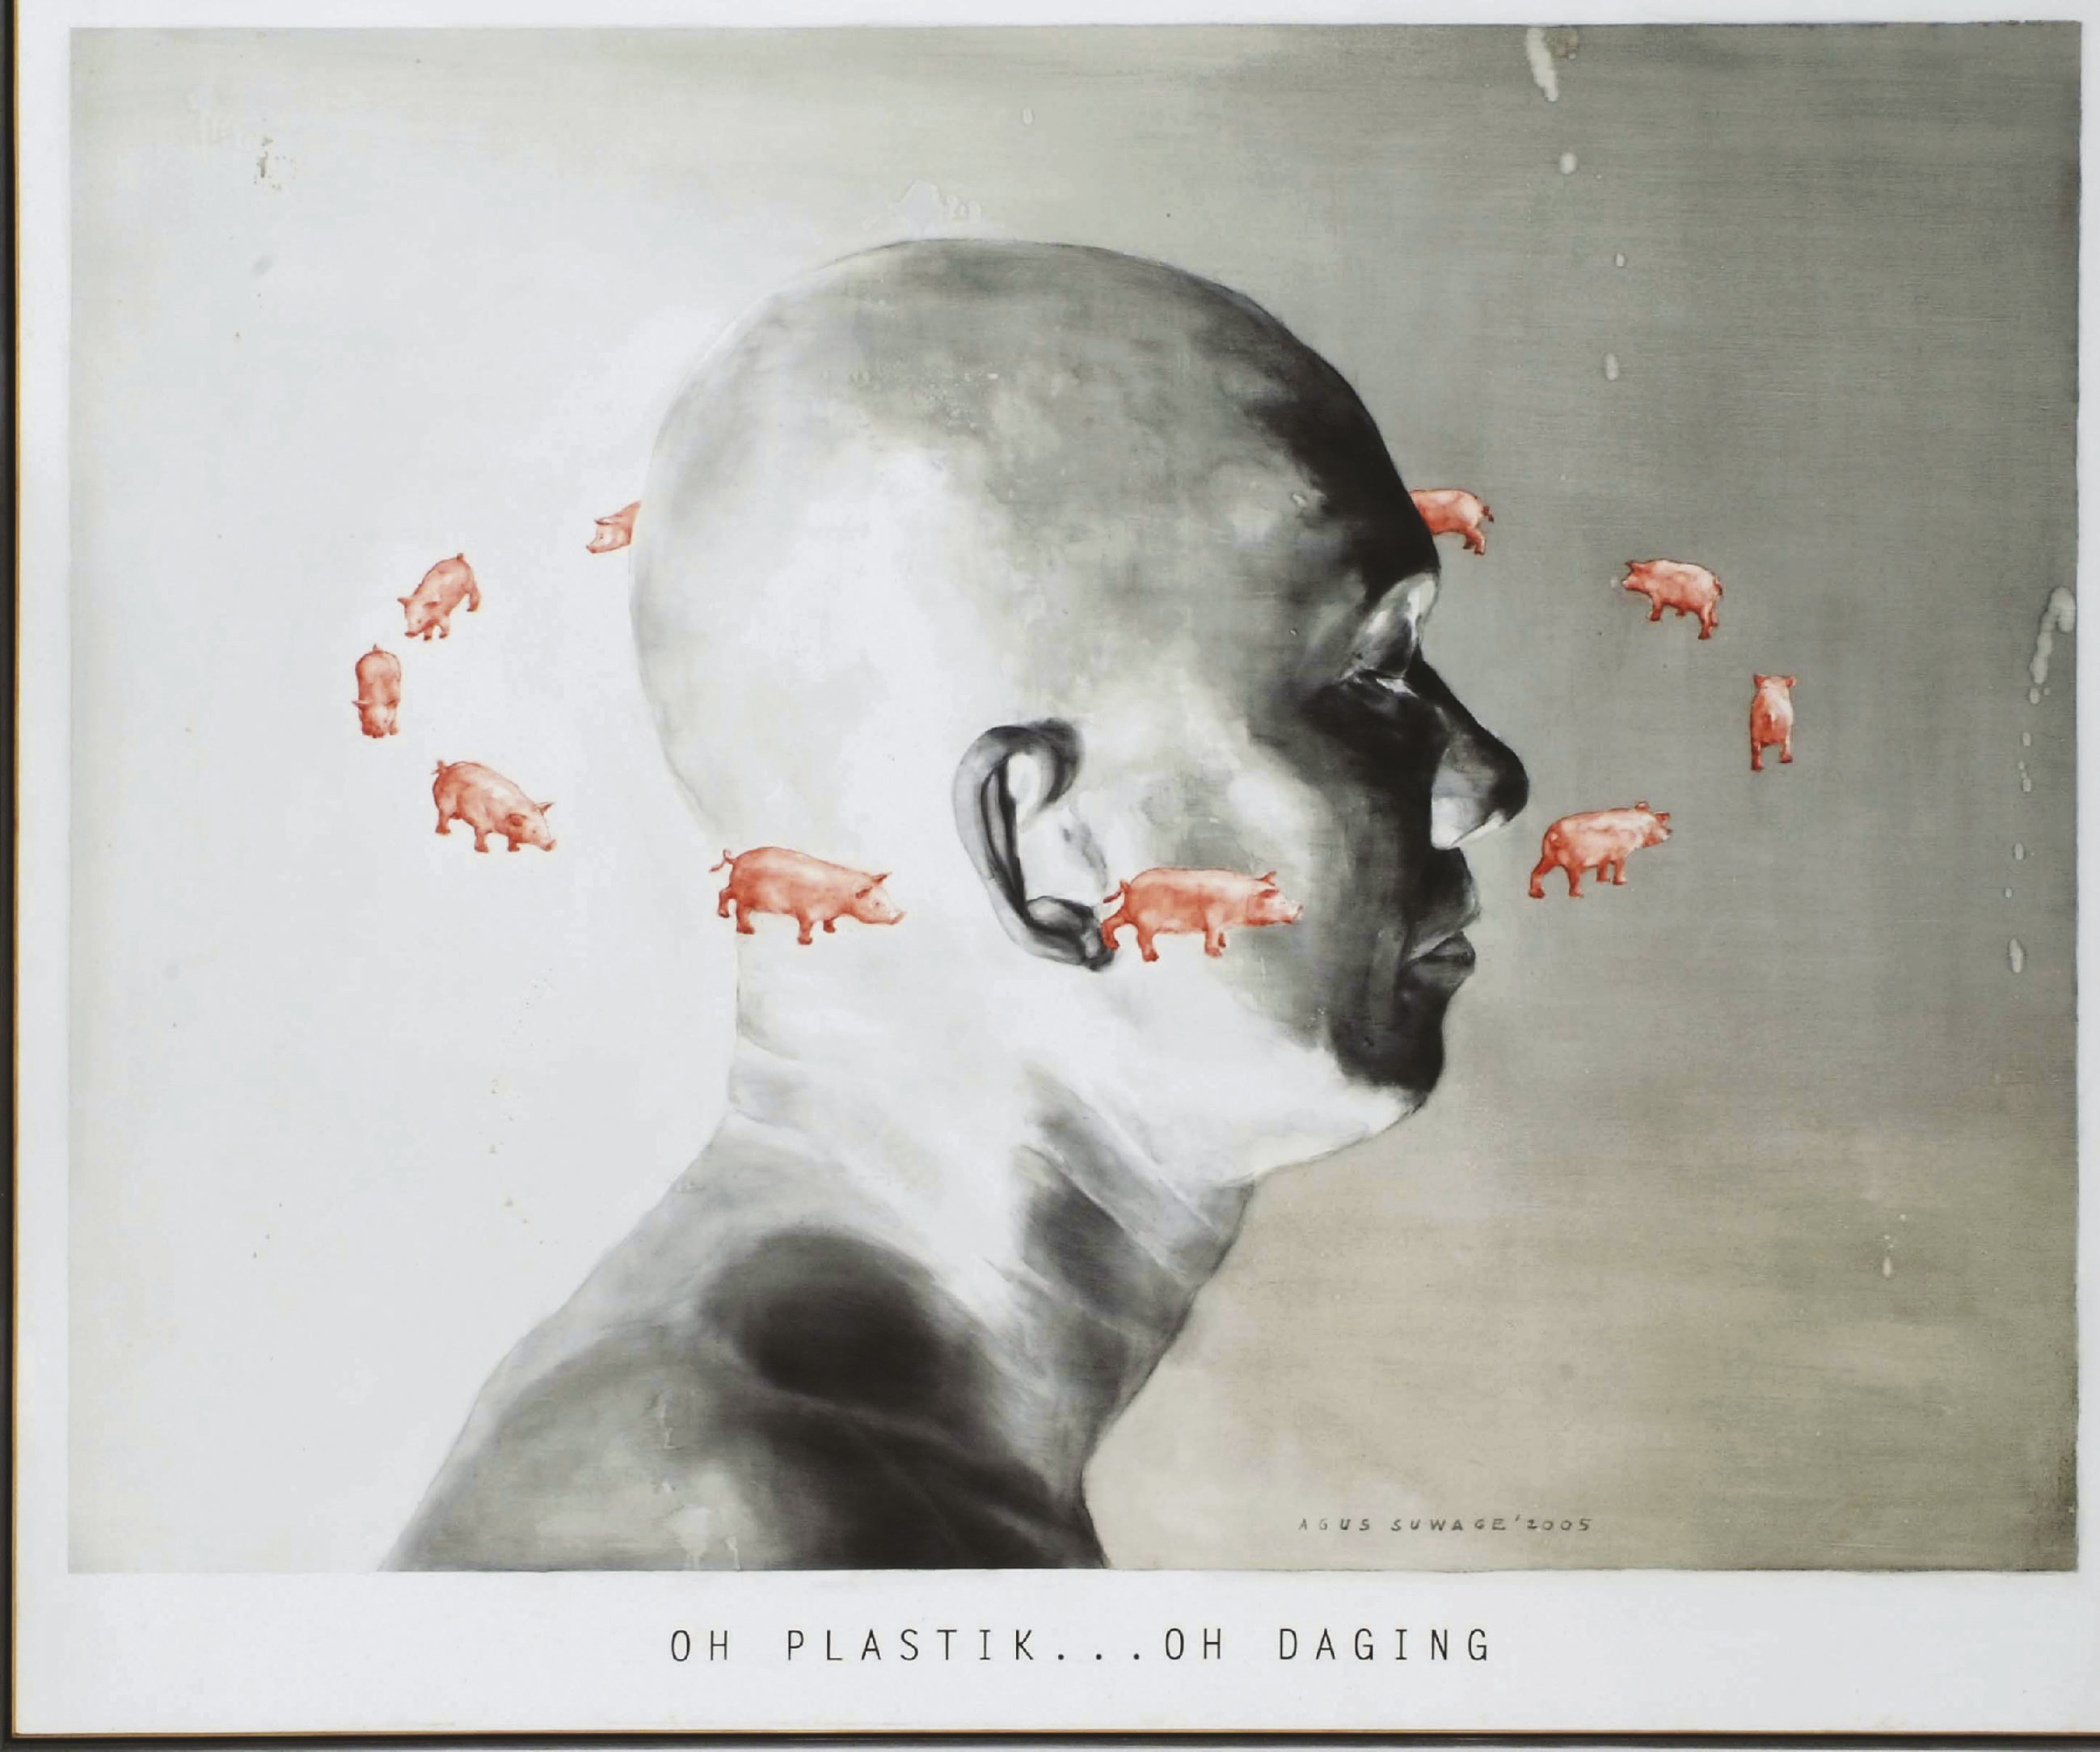 Oh plastik...oh daging (Oh plastic...oh meat)